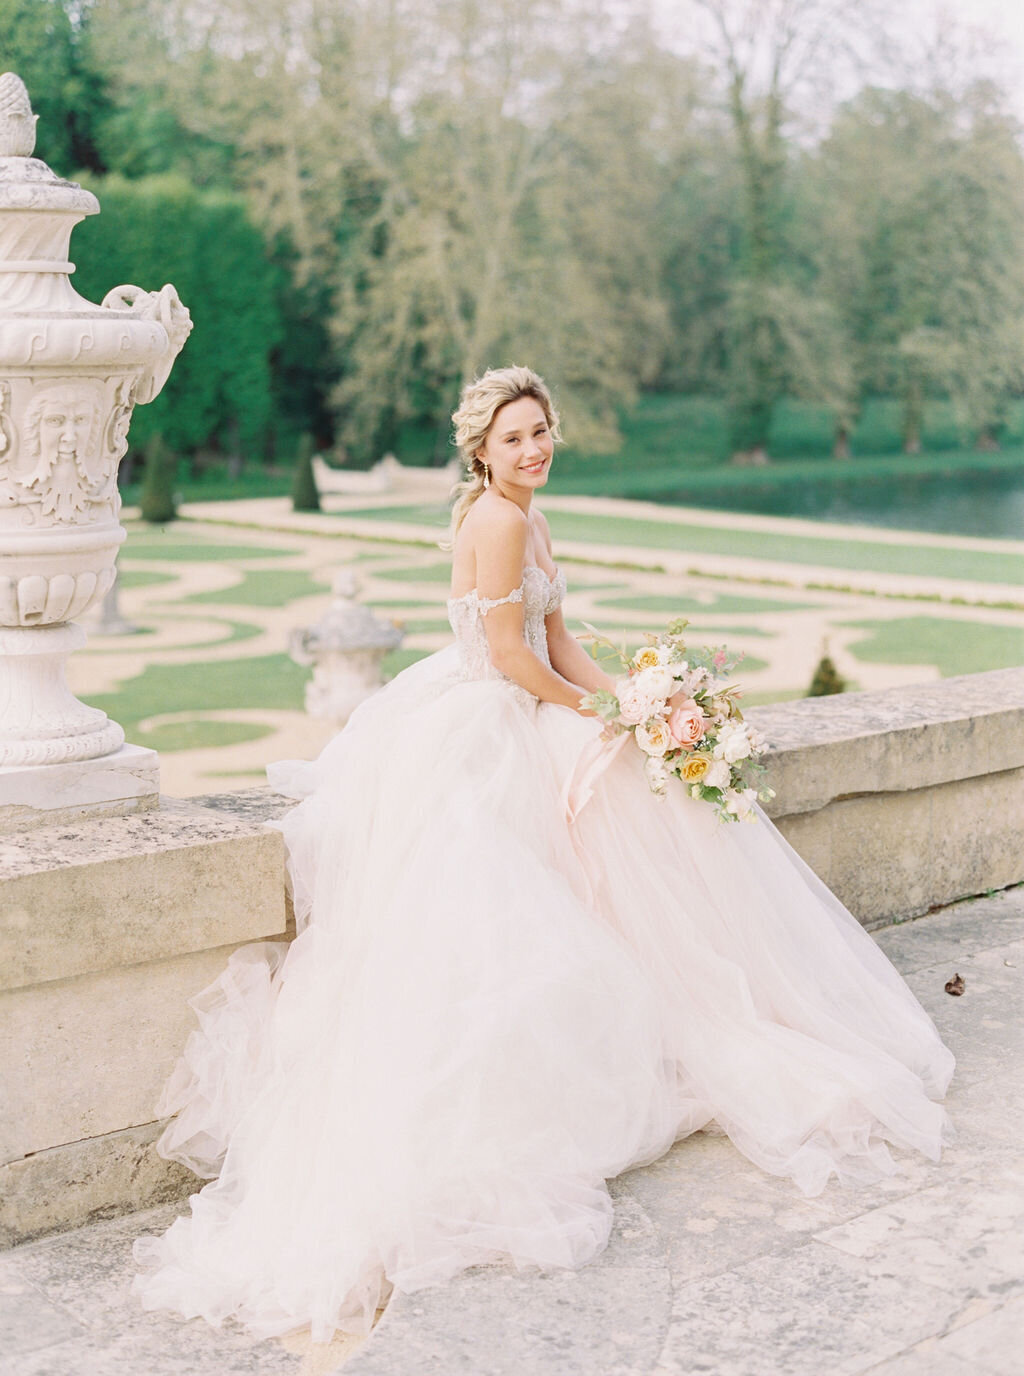 Chateau_de_Villette_wedding3